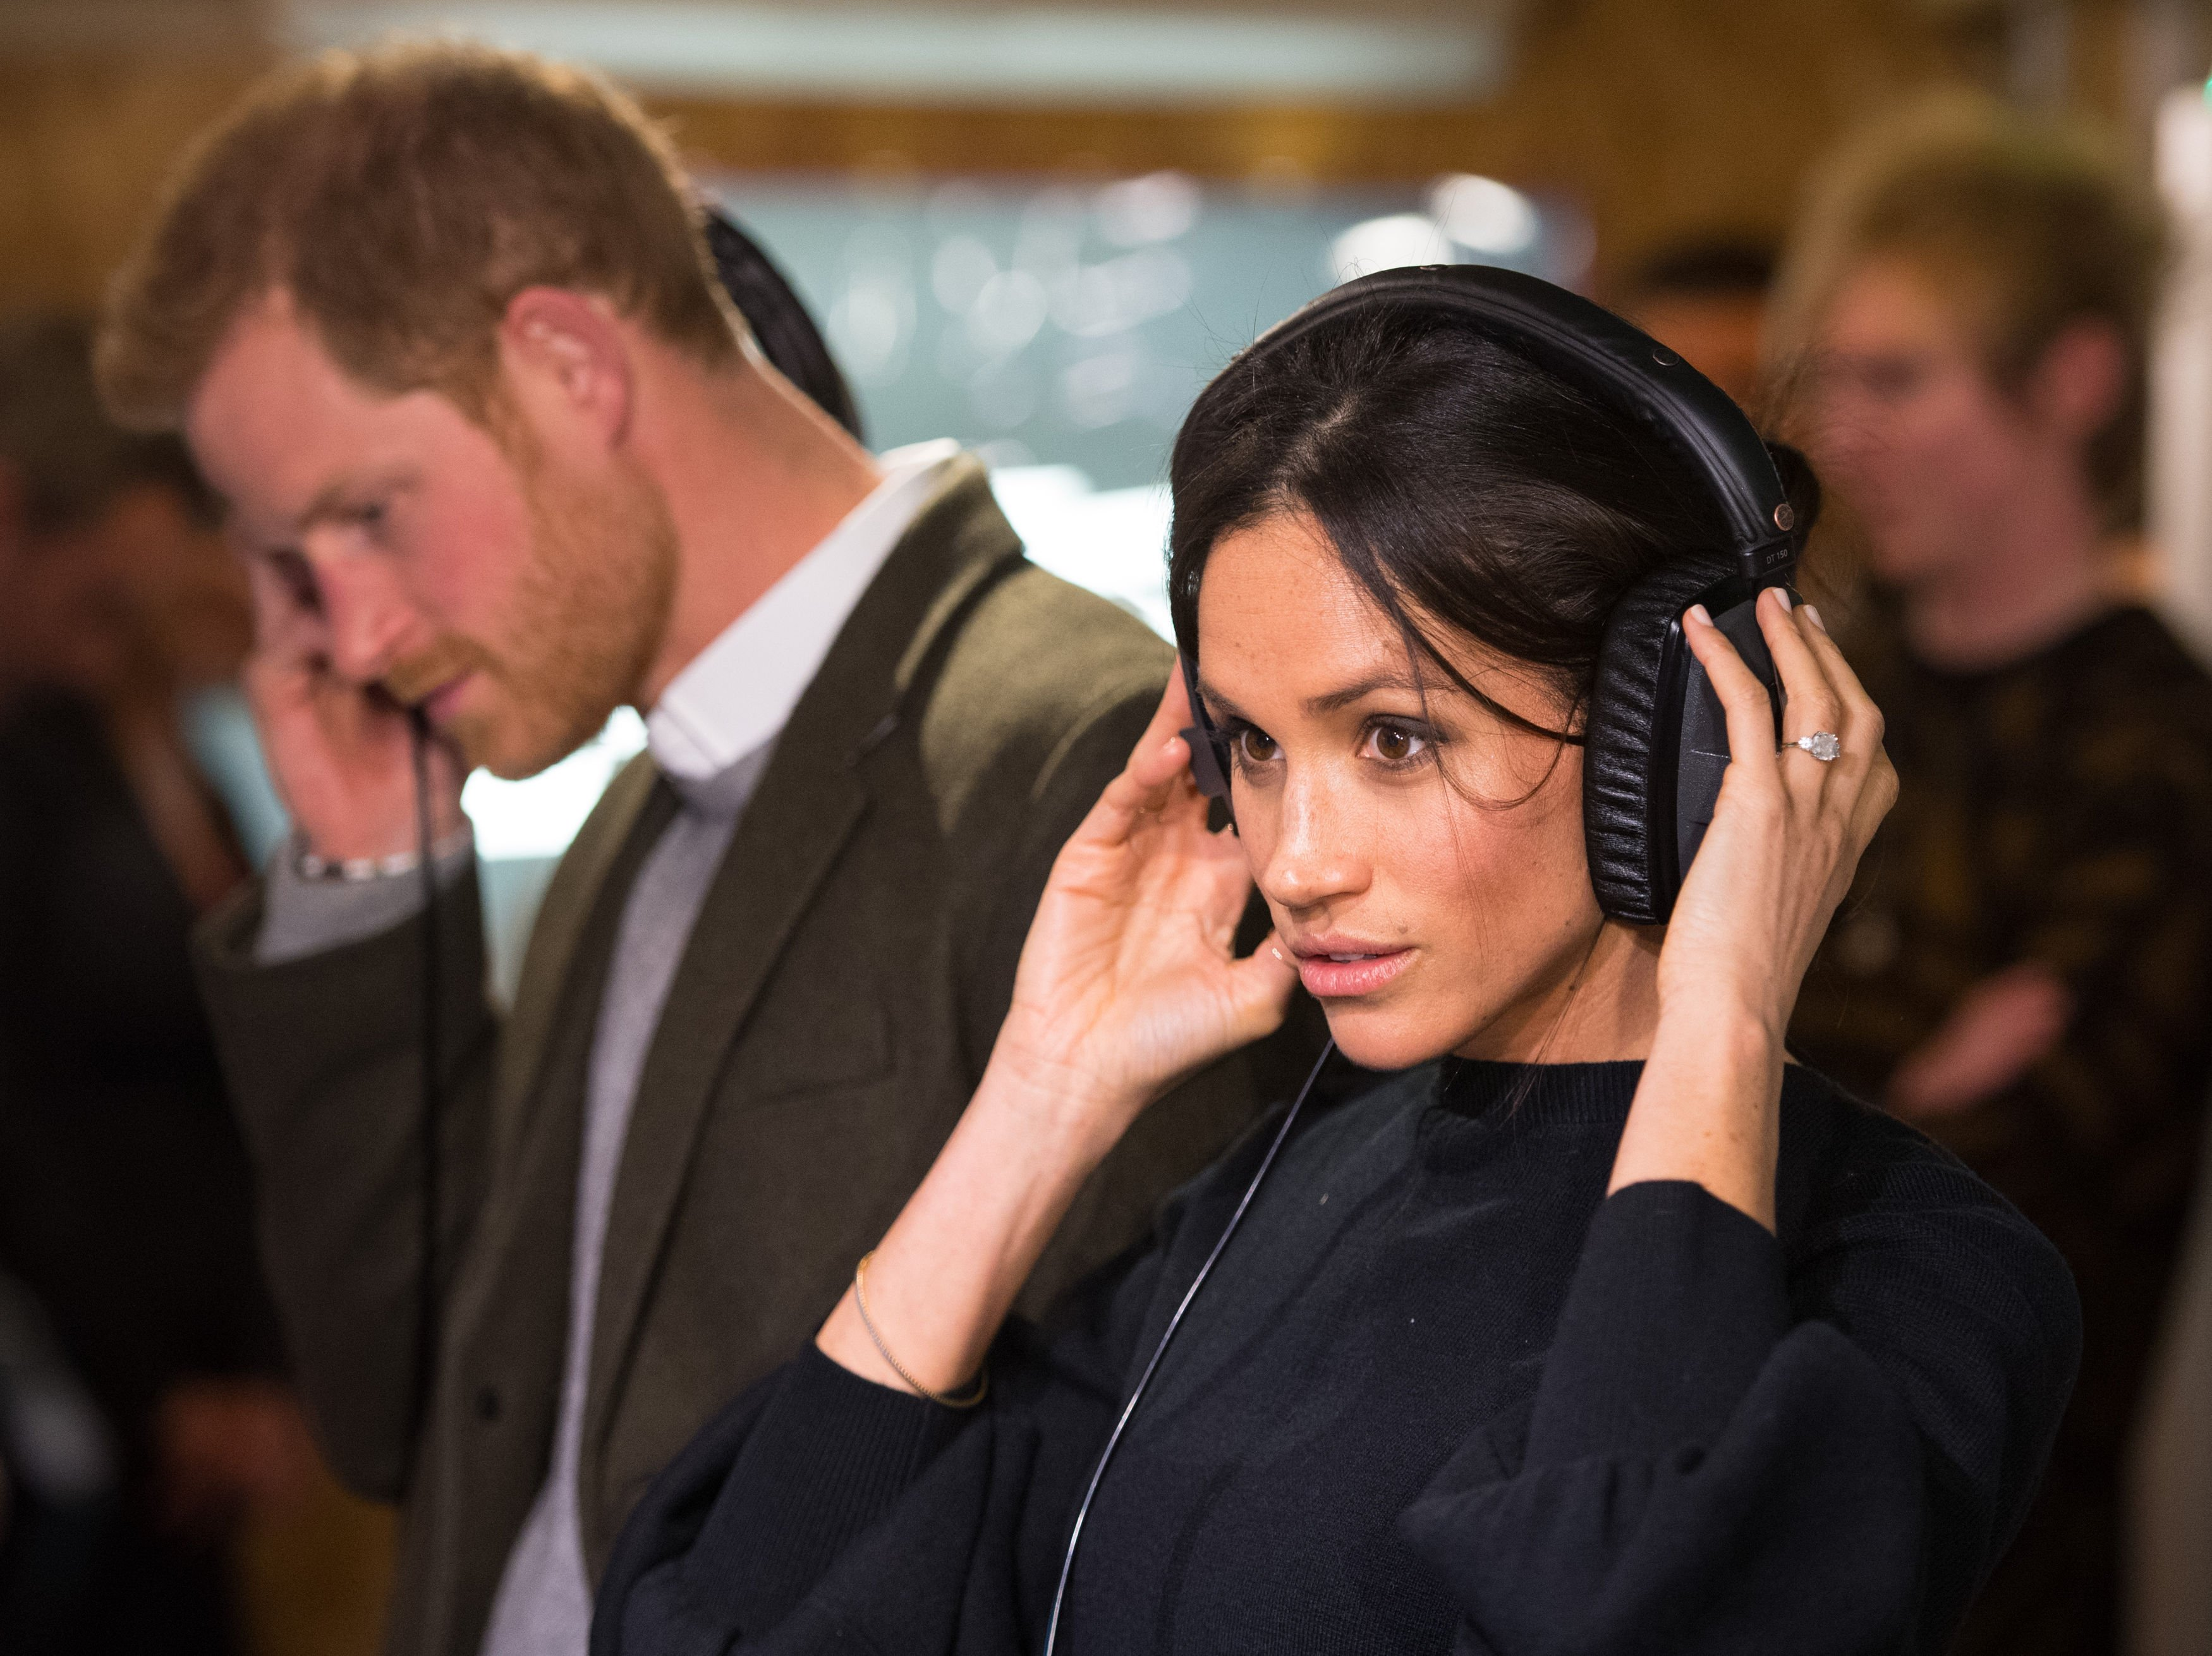 Prince Harry and Meghan Markle listen to a broadcast through headphones at Reprezent 107.3FM in Pop Brixton on January 9, 2018 in London, England | Photo: Getty Images